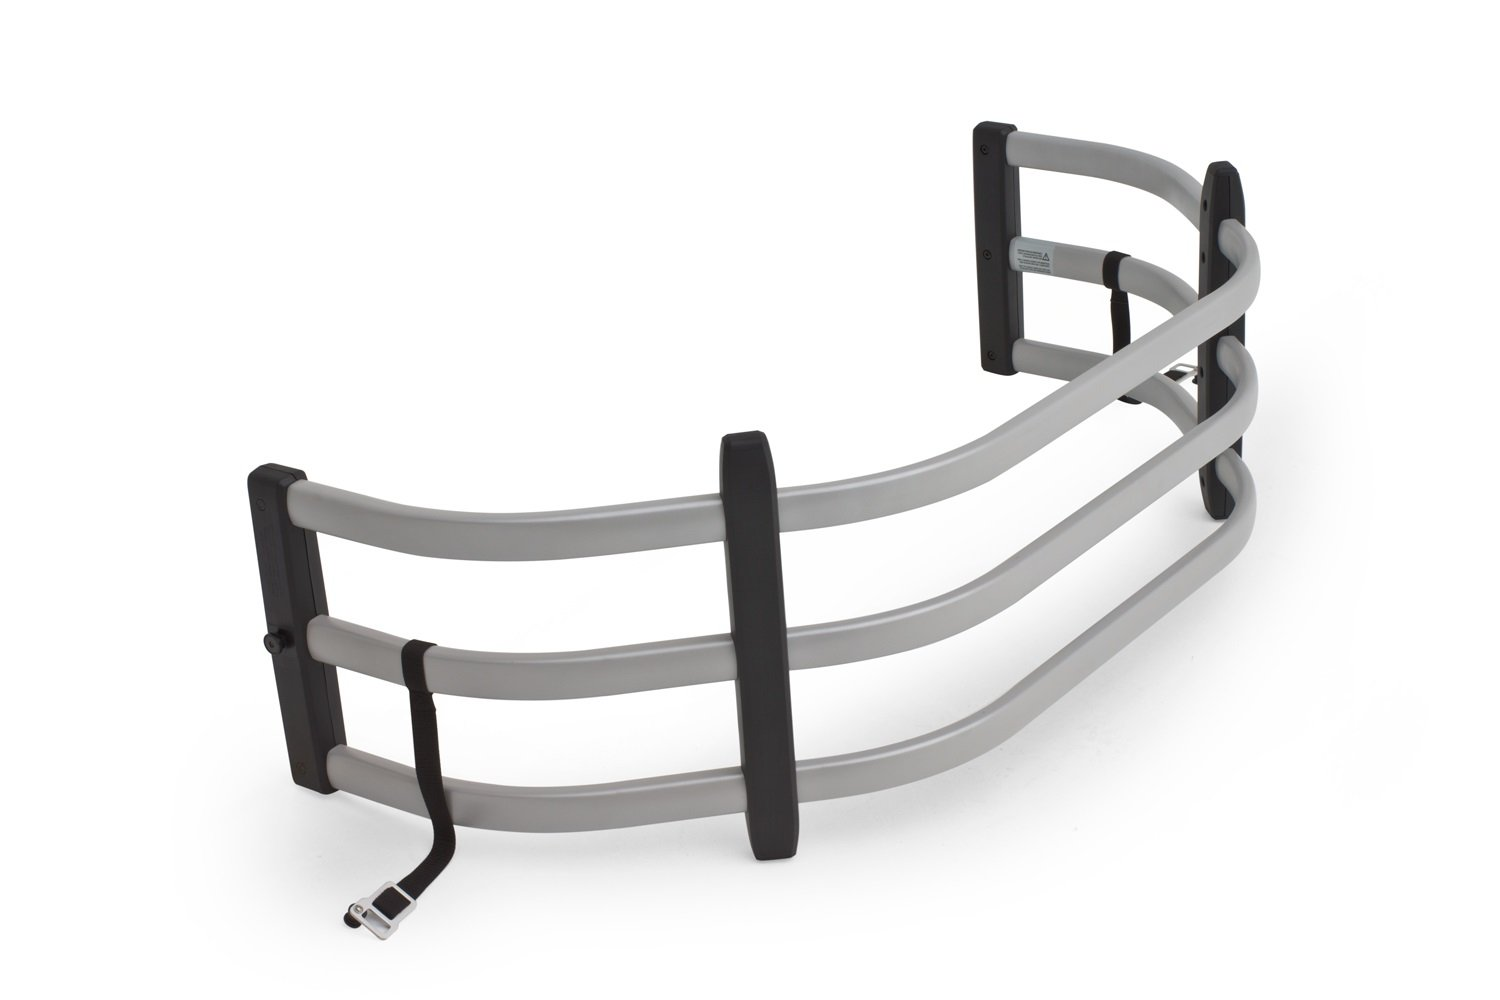 AMP Research 74805-01A Bed X-Tender Black